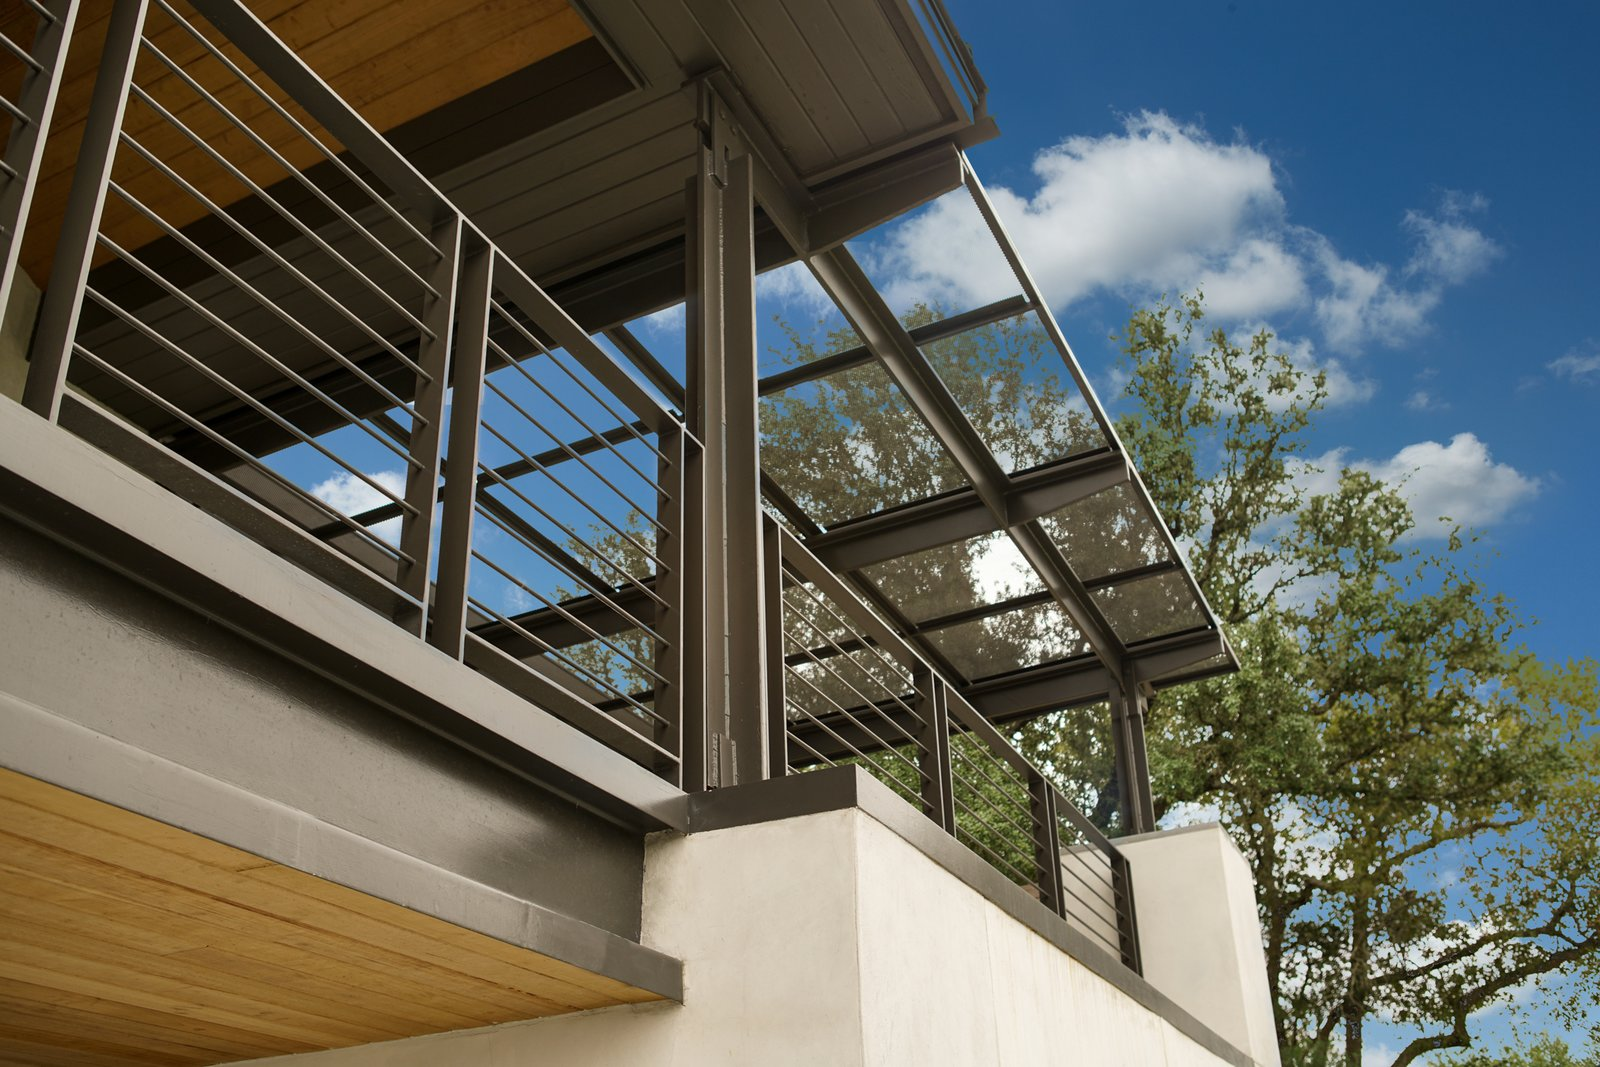 Awning detail  River Garden Trail Residence by Texas Construction Company